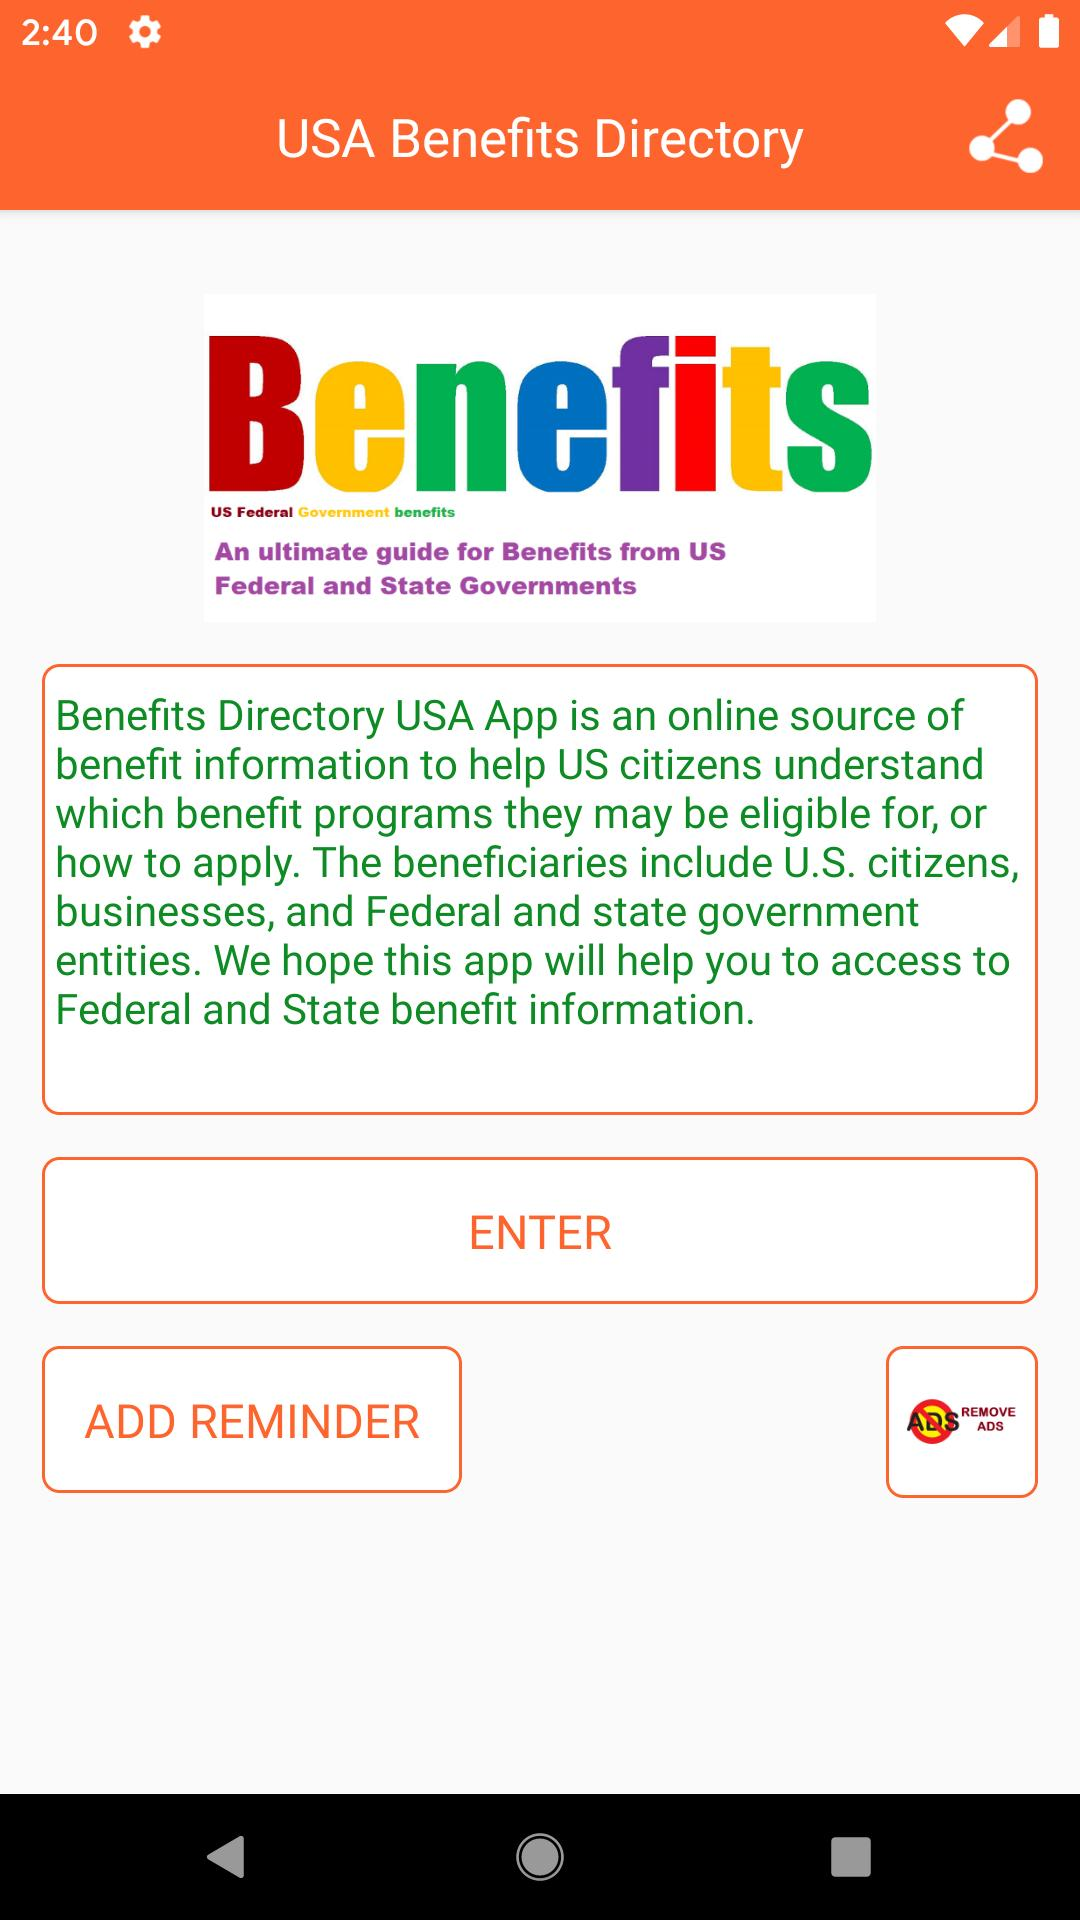 USA Benefits Guide- Federal & State Benefits Guide poster